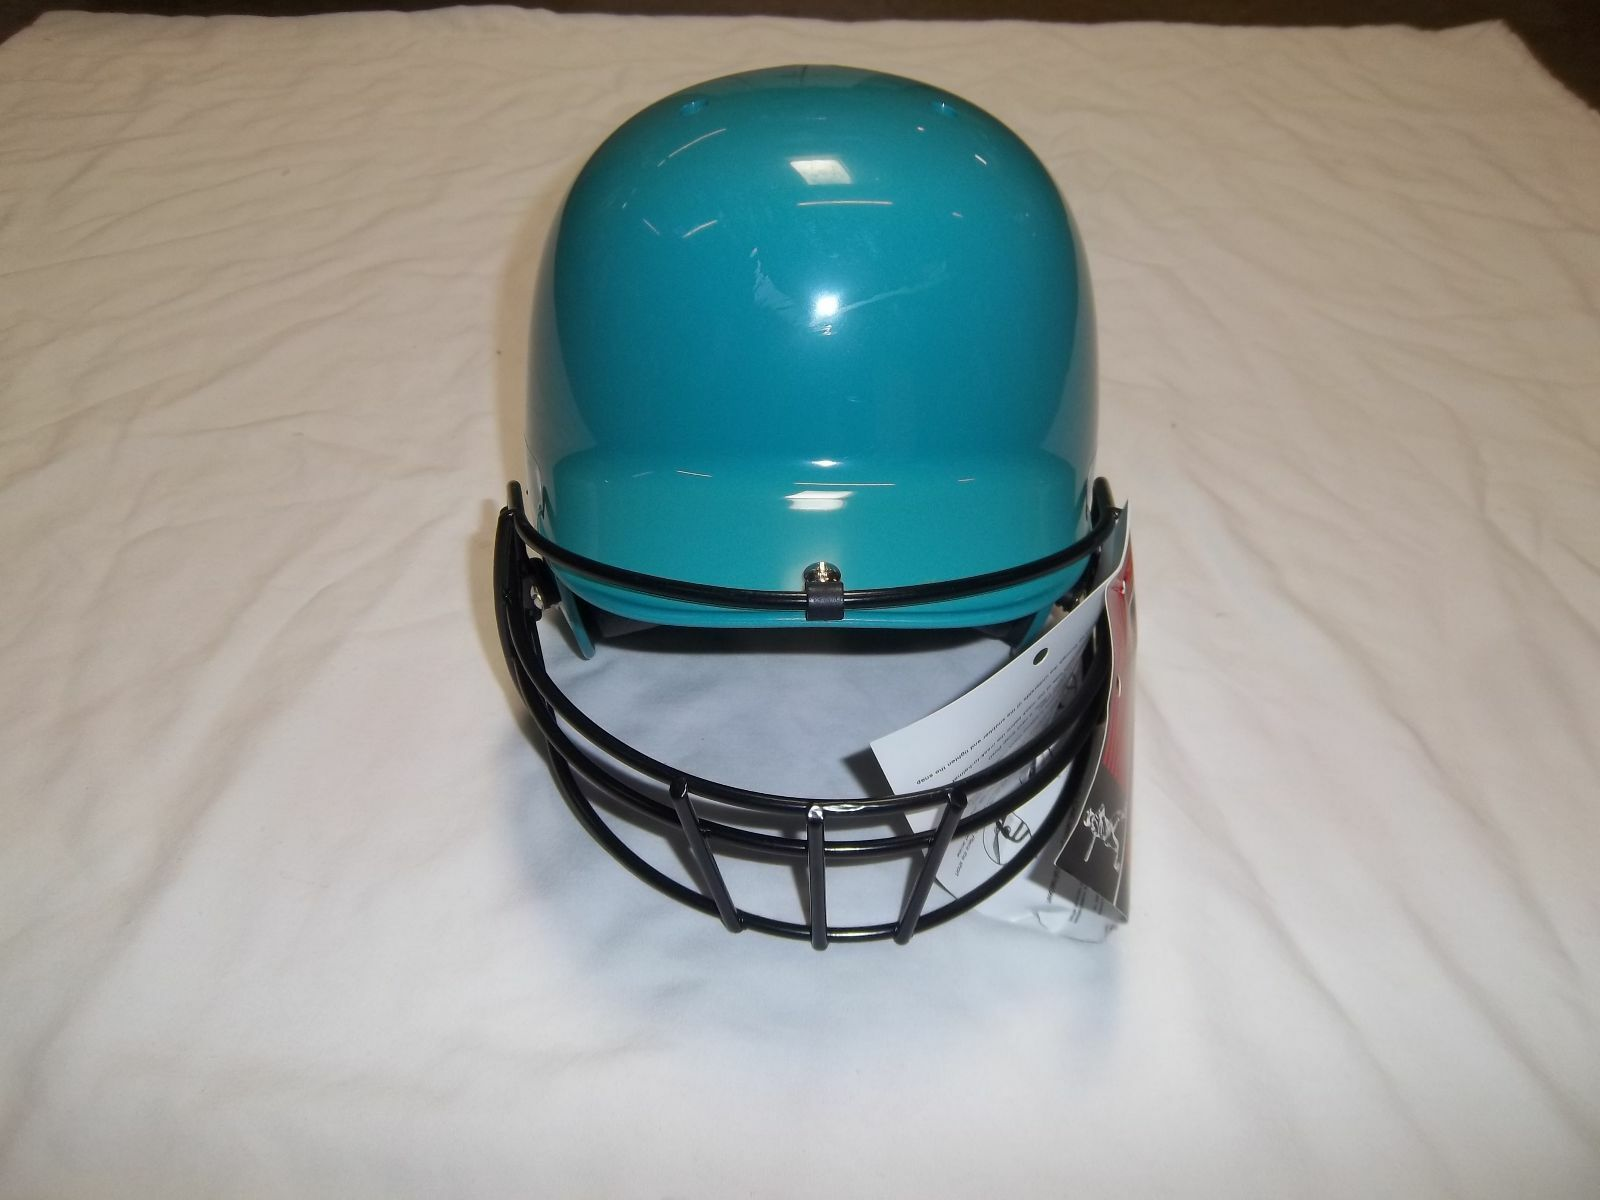 ADAMS BH-65 ONE SIZE FITS ALL SOFTBALL BATTING HELMET - VARIOUS COLORS WITH MASK